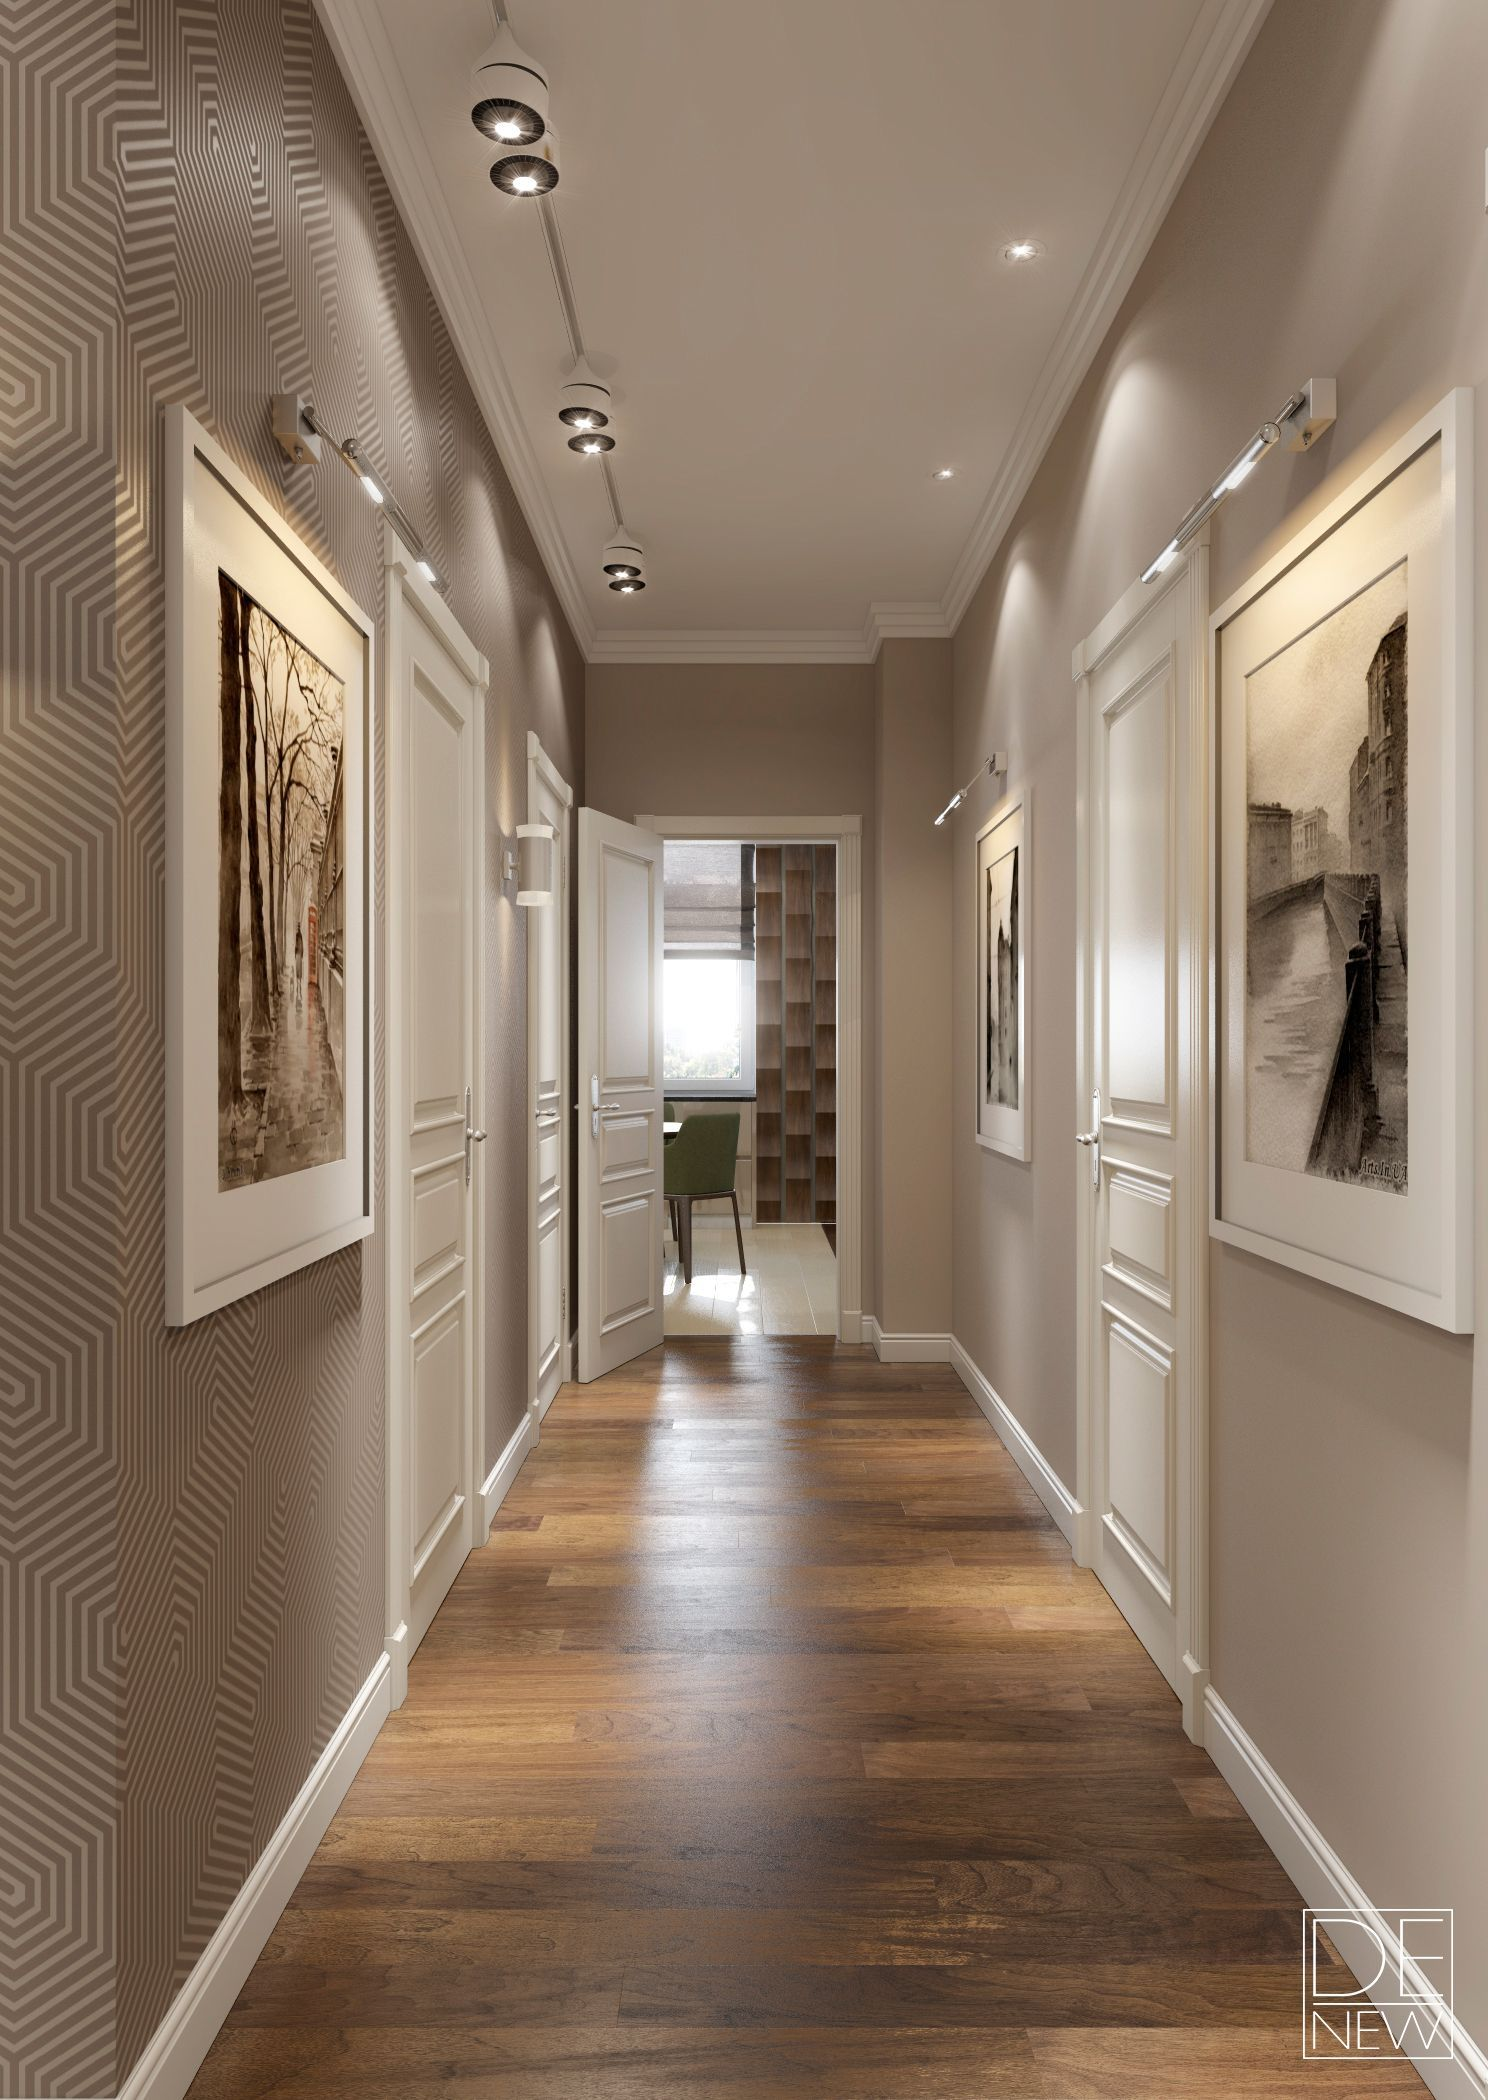 Hallway floor decor  Modern apartment for a young family  Living room ideas  Pinterest